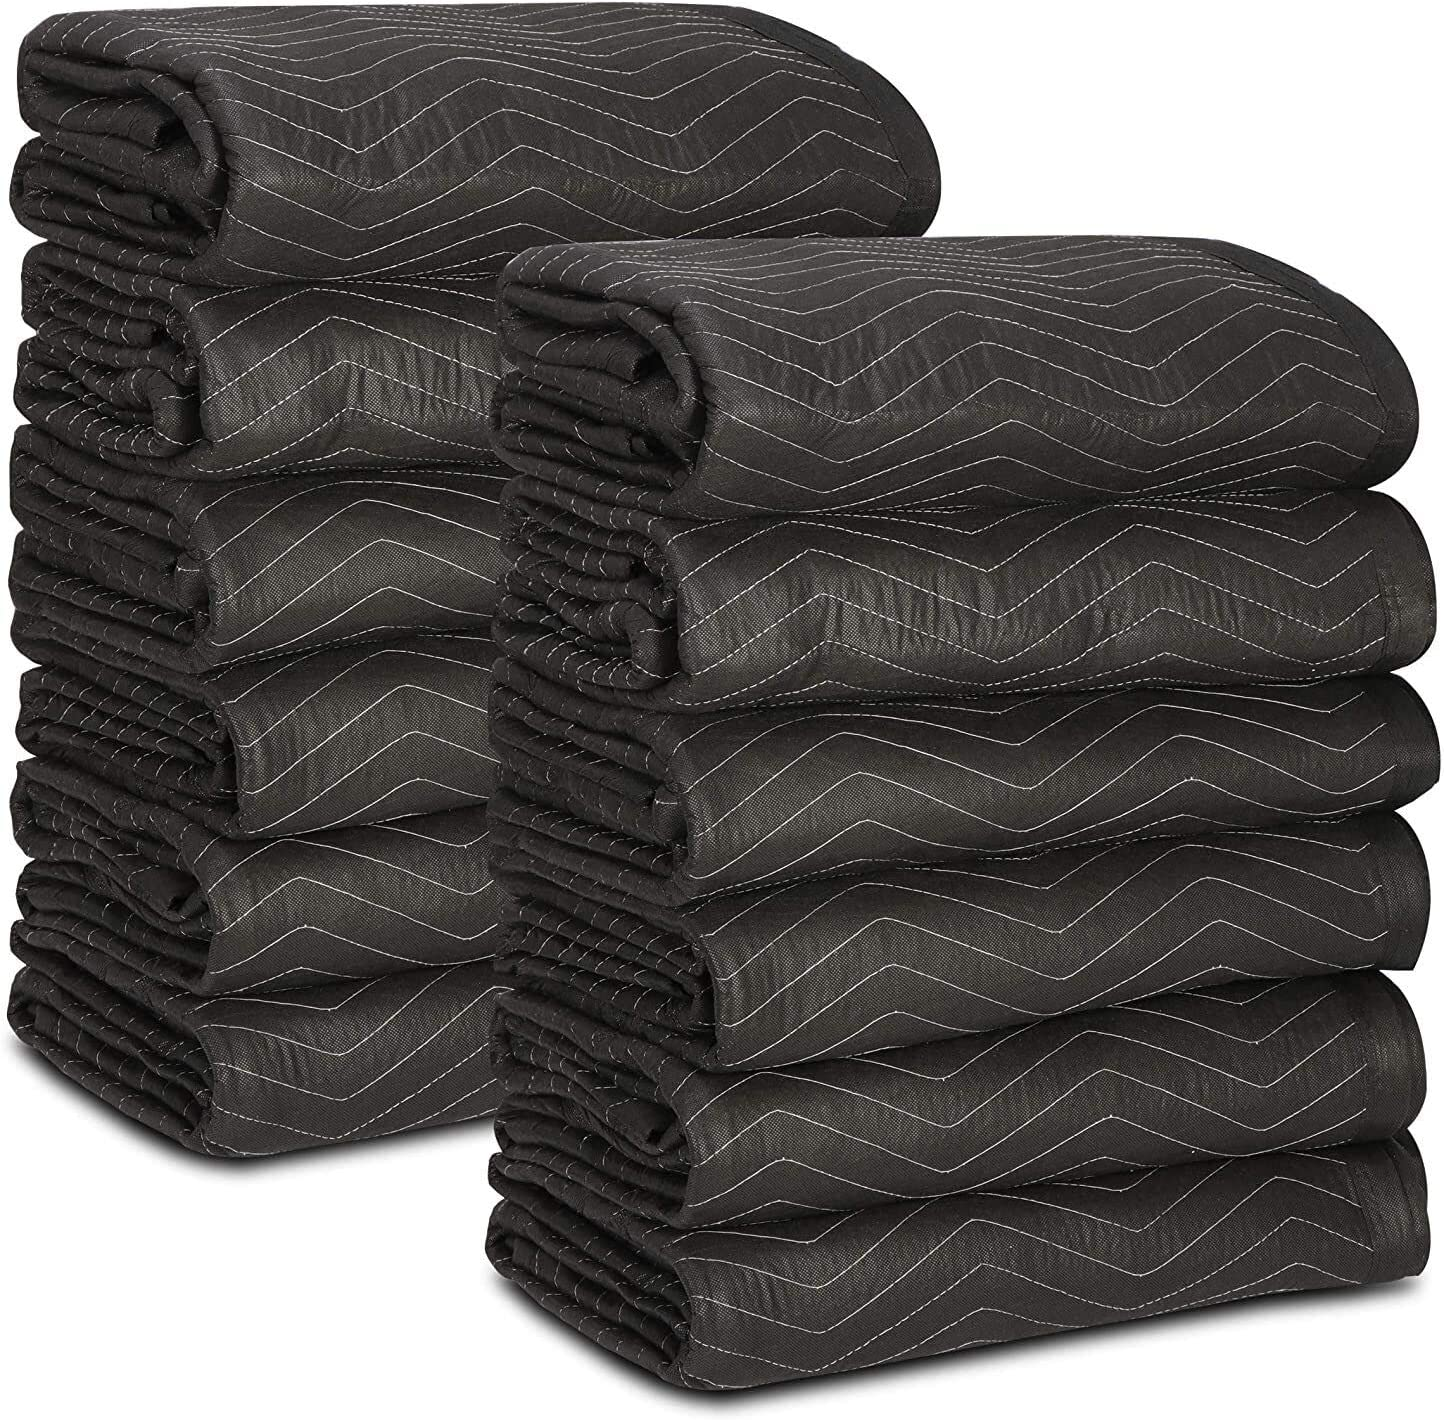 12 Moving Super sale Packing Blankets - 80 x lb Heavy Houston Mall 72 Dut dz Inches 65